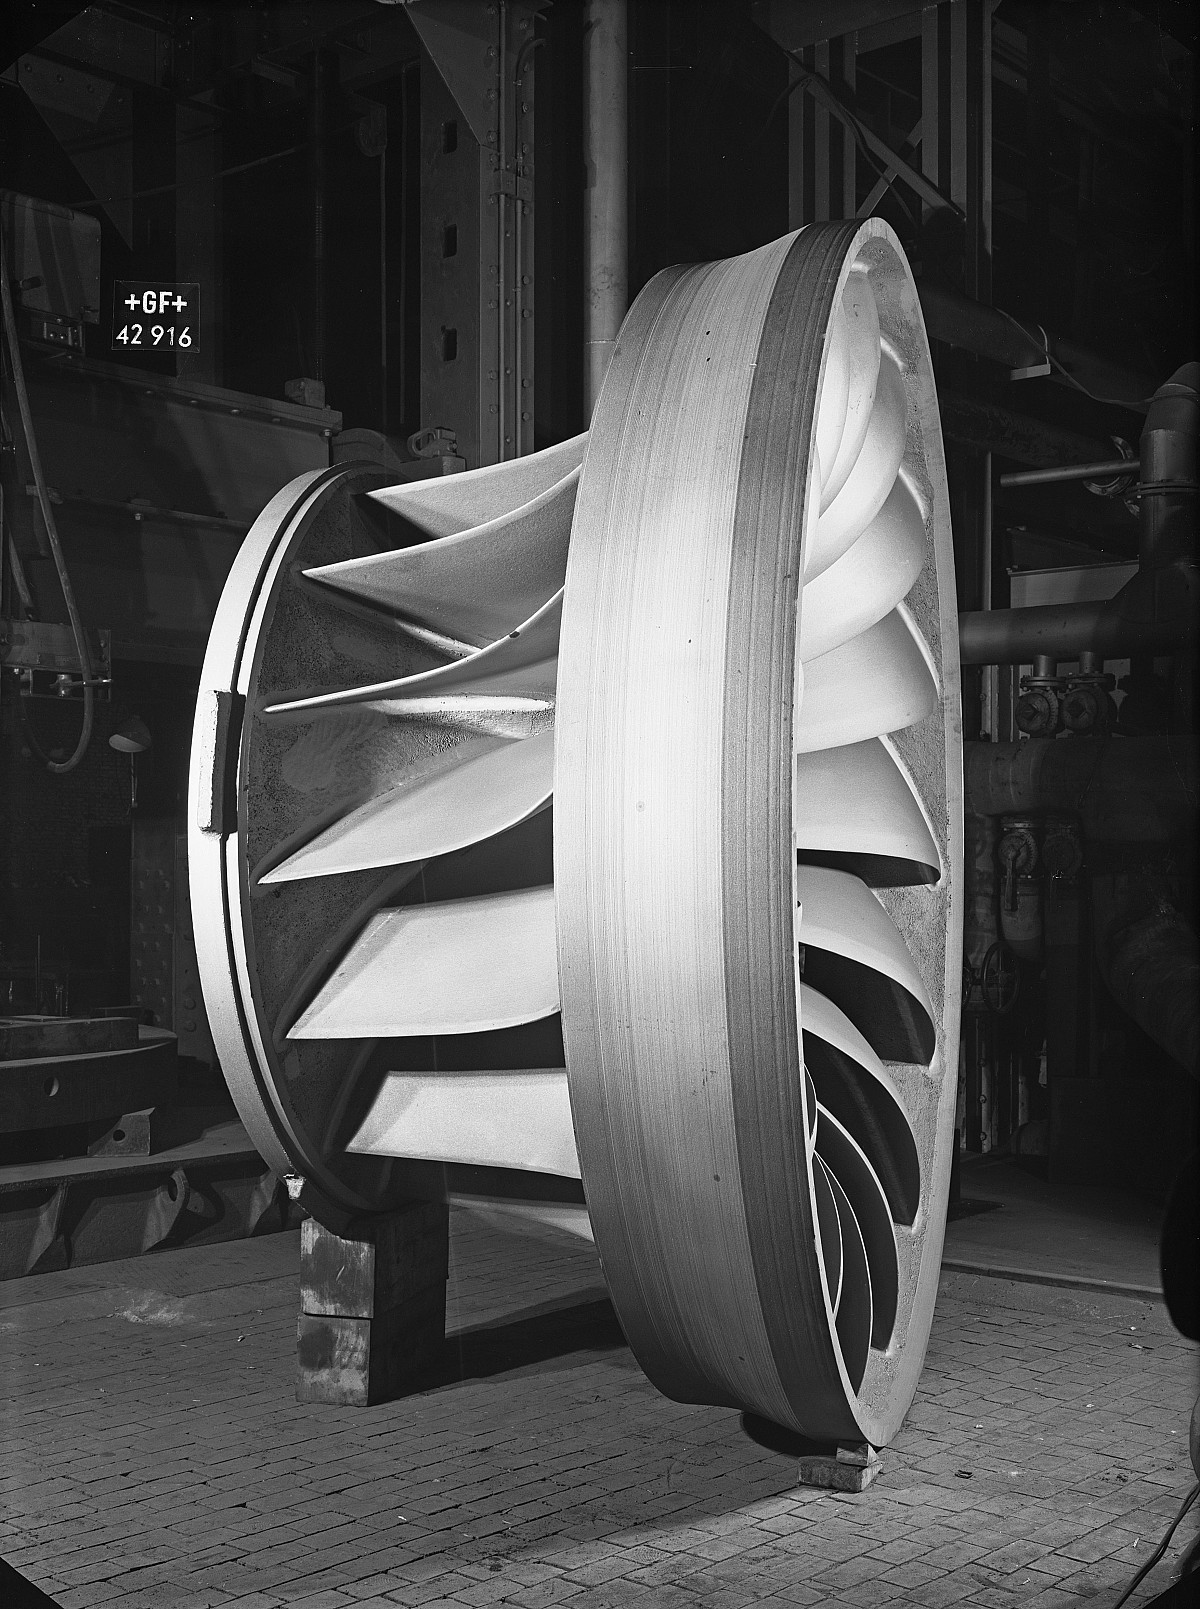 GFA 16/42916: Water turbine wheel, Escher Wyss